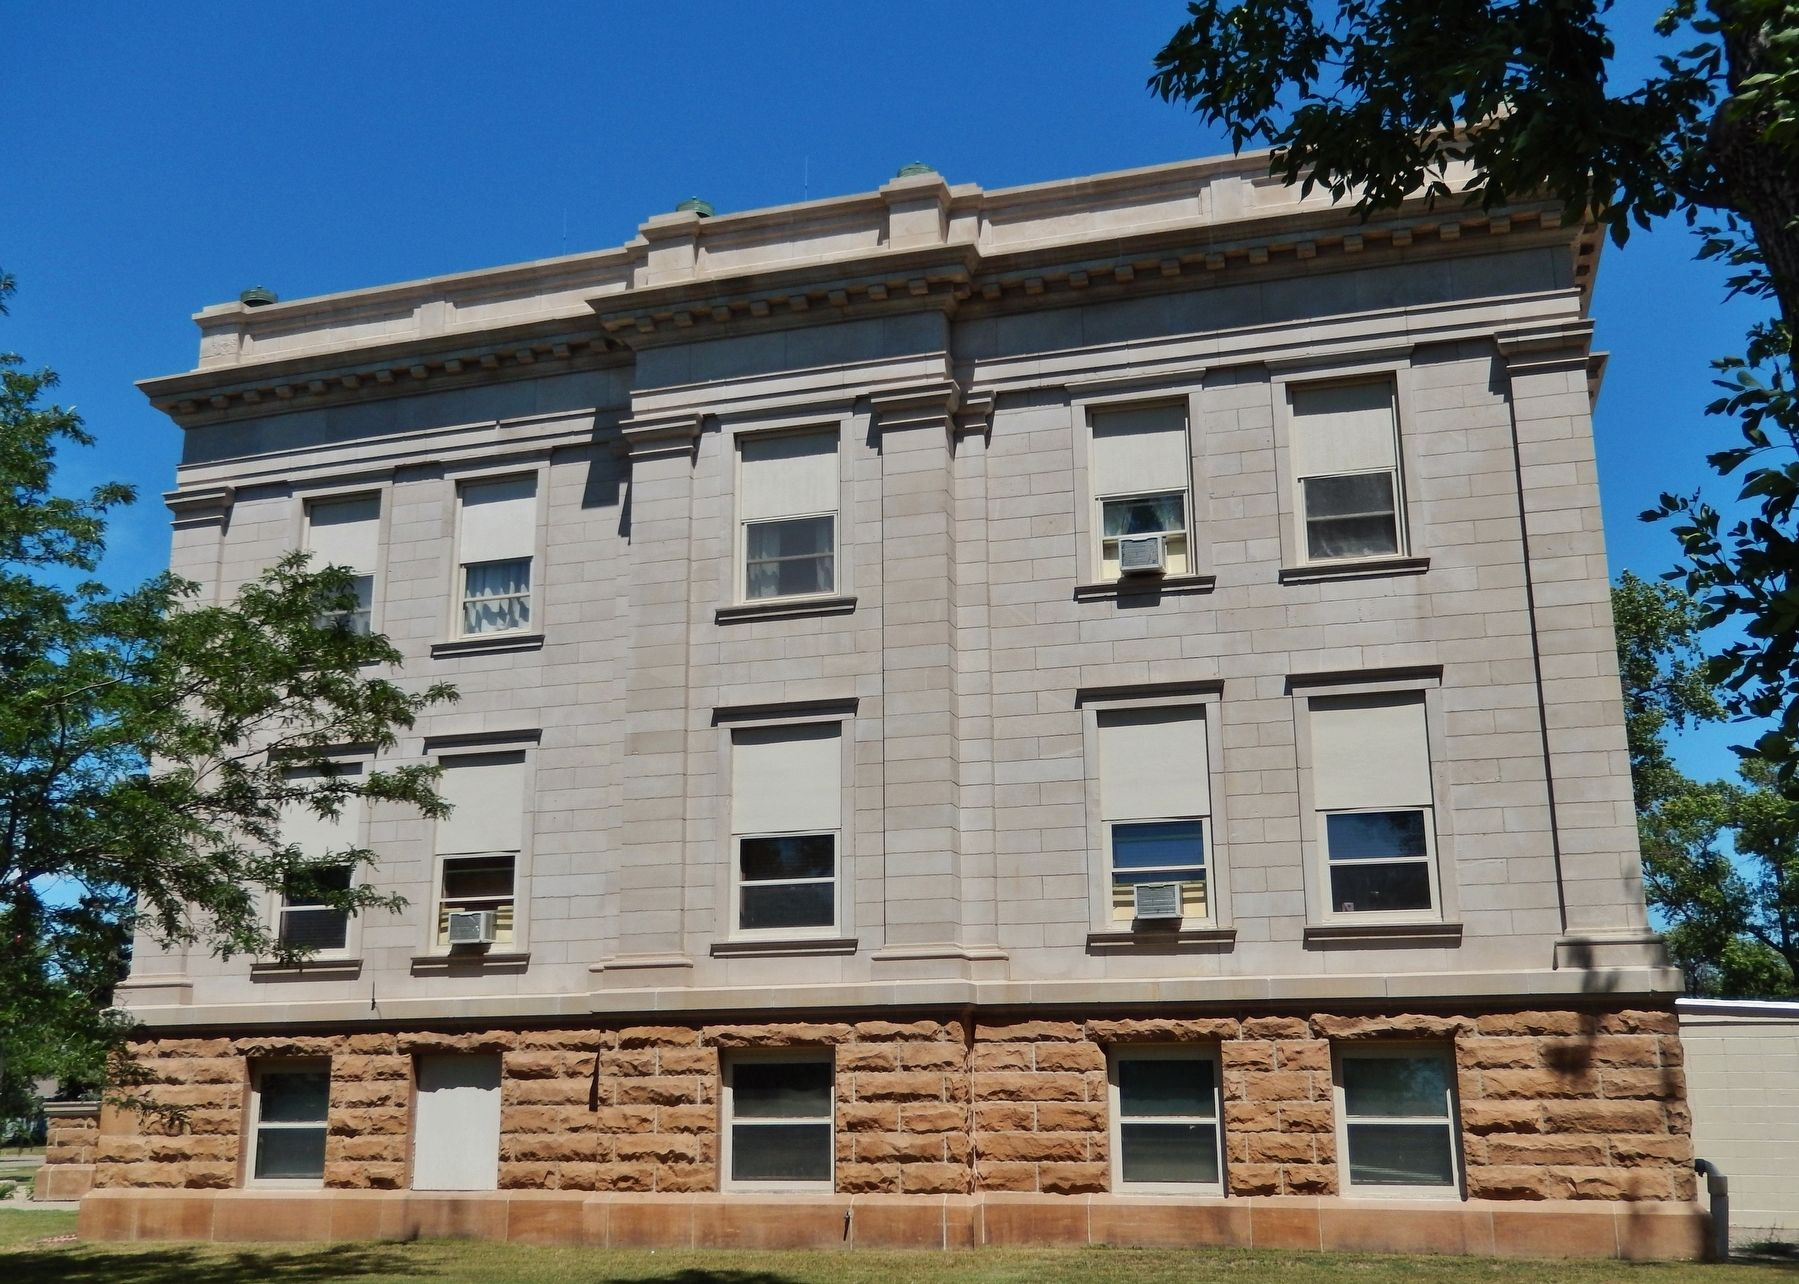 Hyde County Courthouse South Dakota (<i>south side view</i>) image. Click for full size.